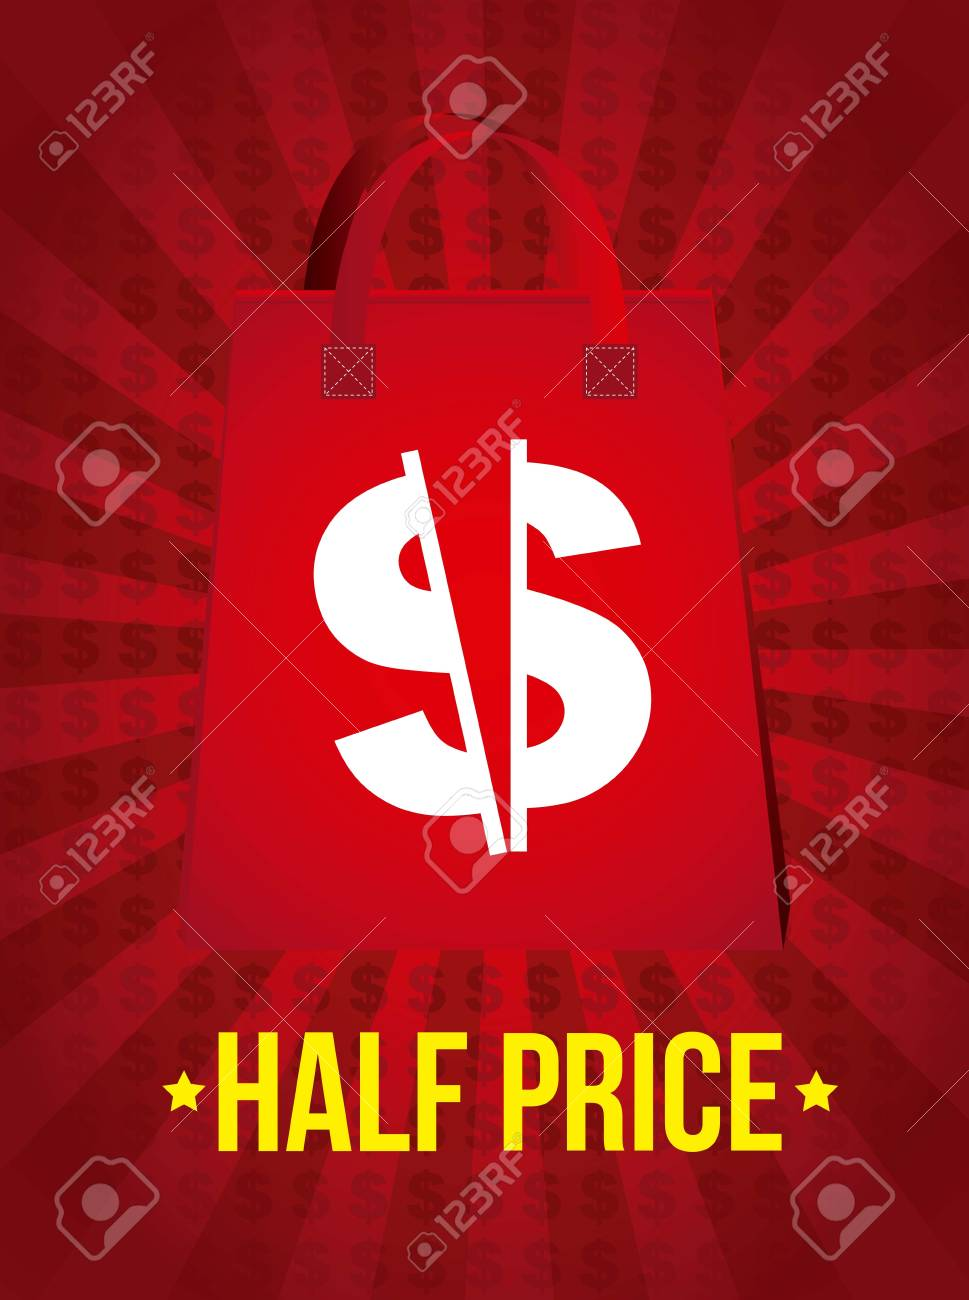 half price announcement over red background. vector illustration Stock Vector - 16997700